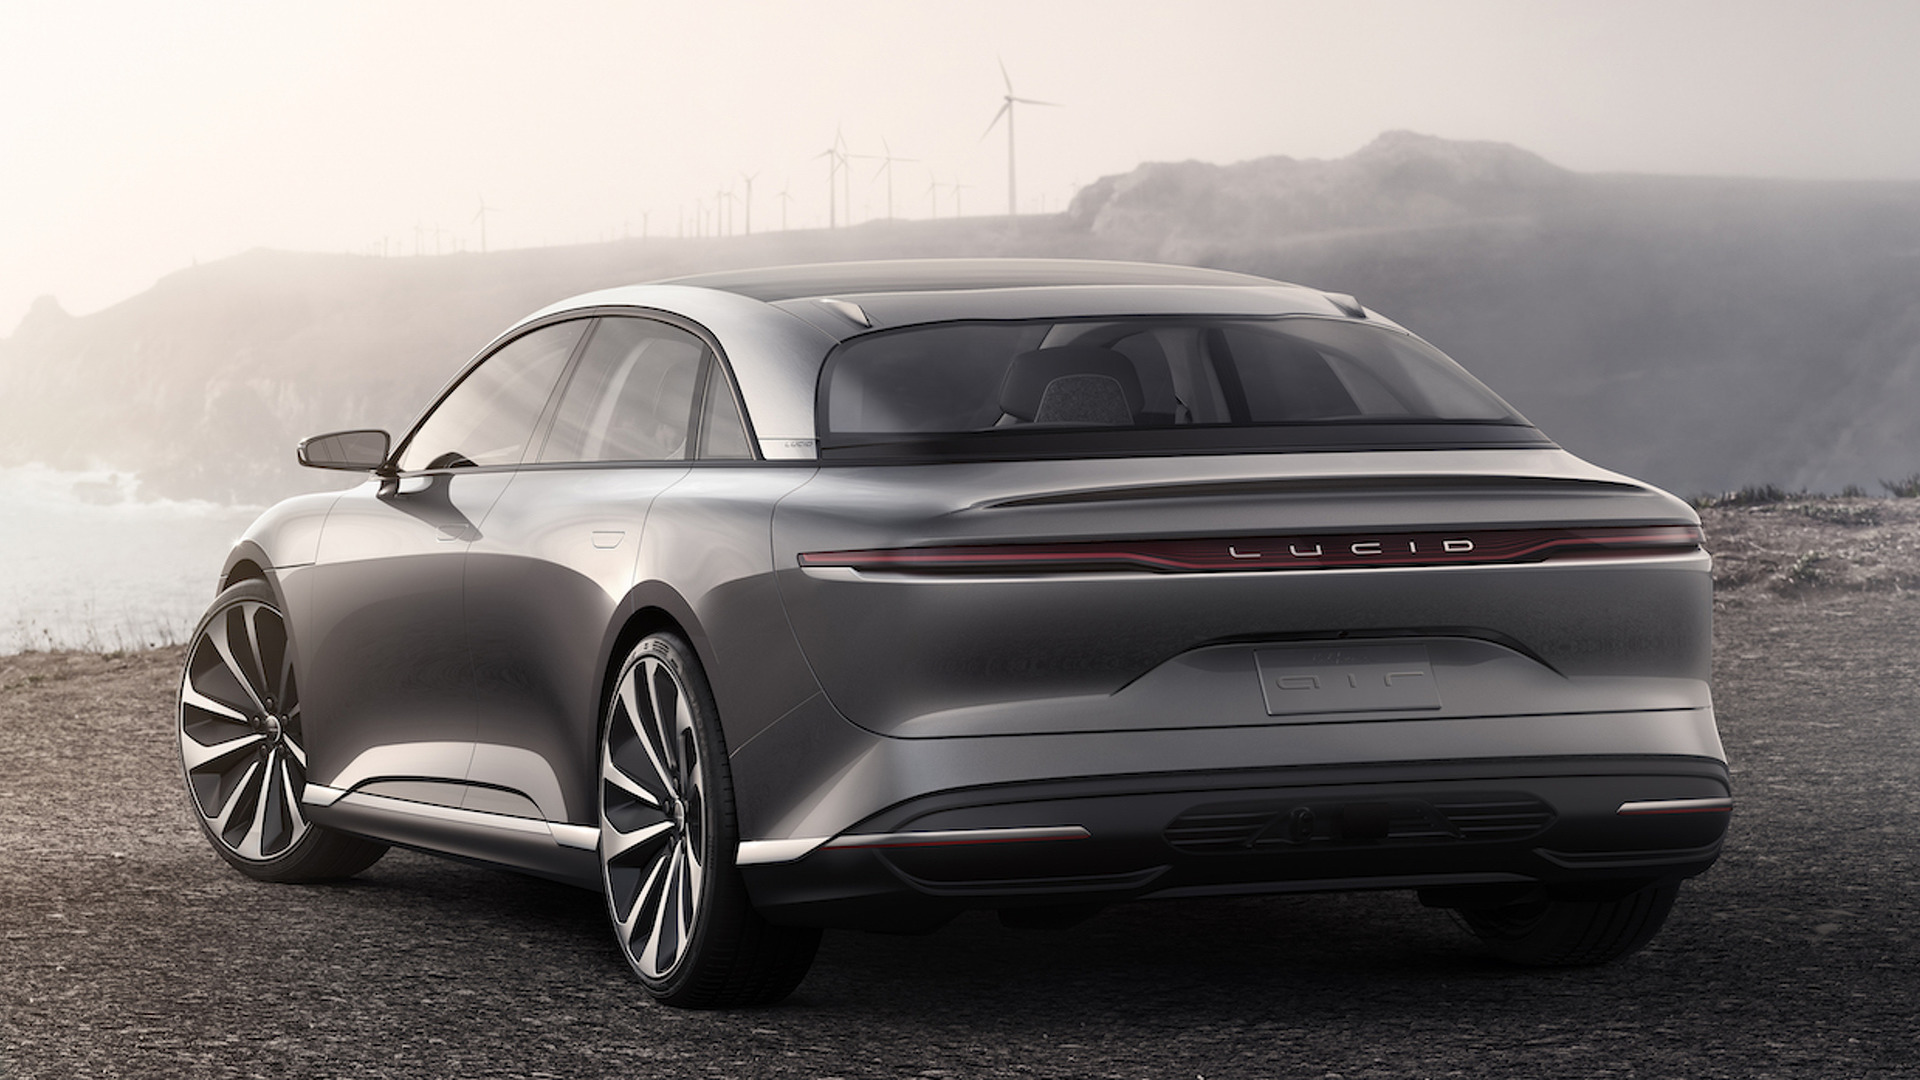 Lucid Motors will be bringing its battery-powered Air saloon to this year's New York International Auto Show. The car boasts 2.5 seconds of launch time and maxes out at 378 km/h (235 mph), leaving the Tesla Model S far behind with its 250 km/h (155 mph).